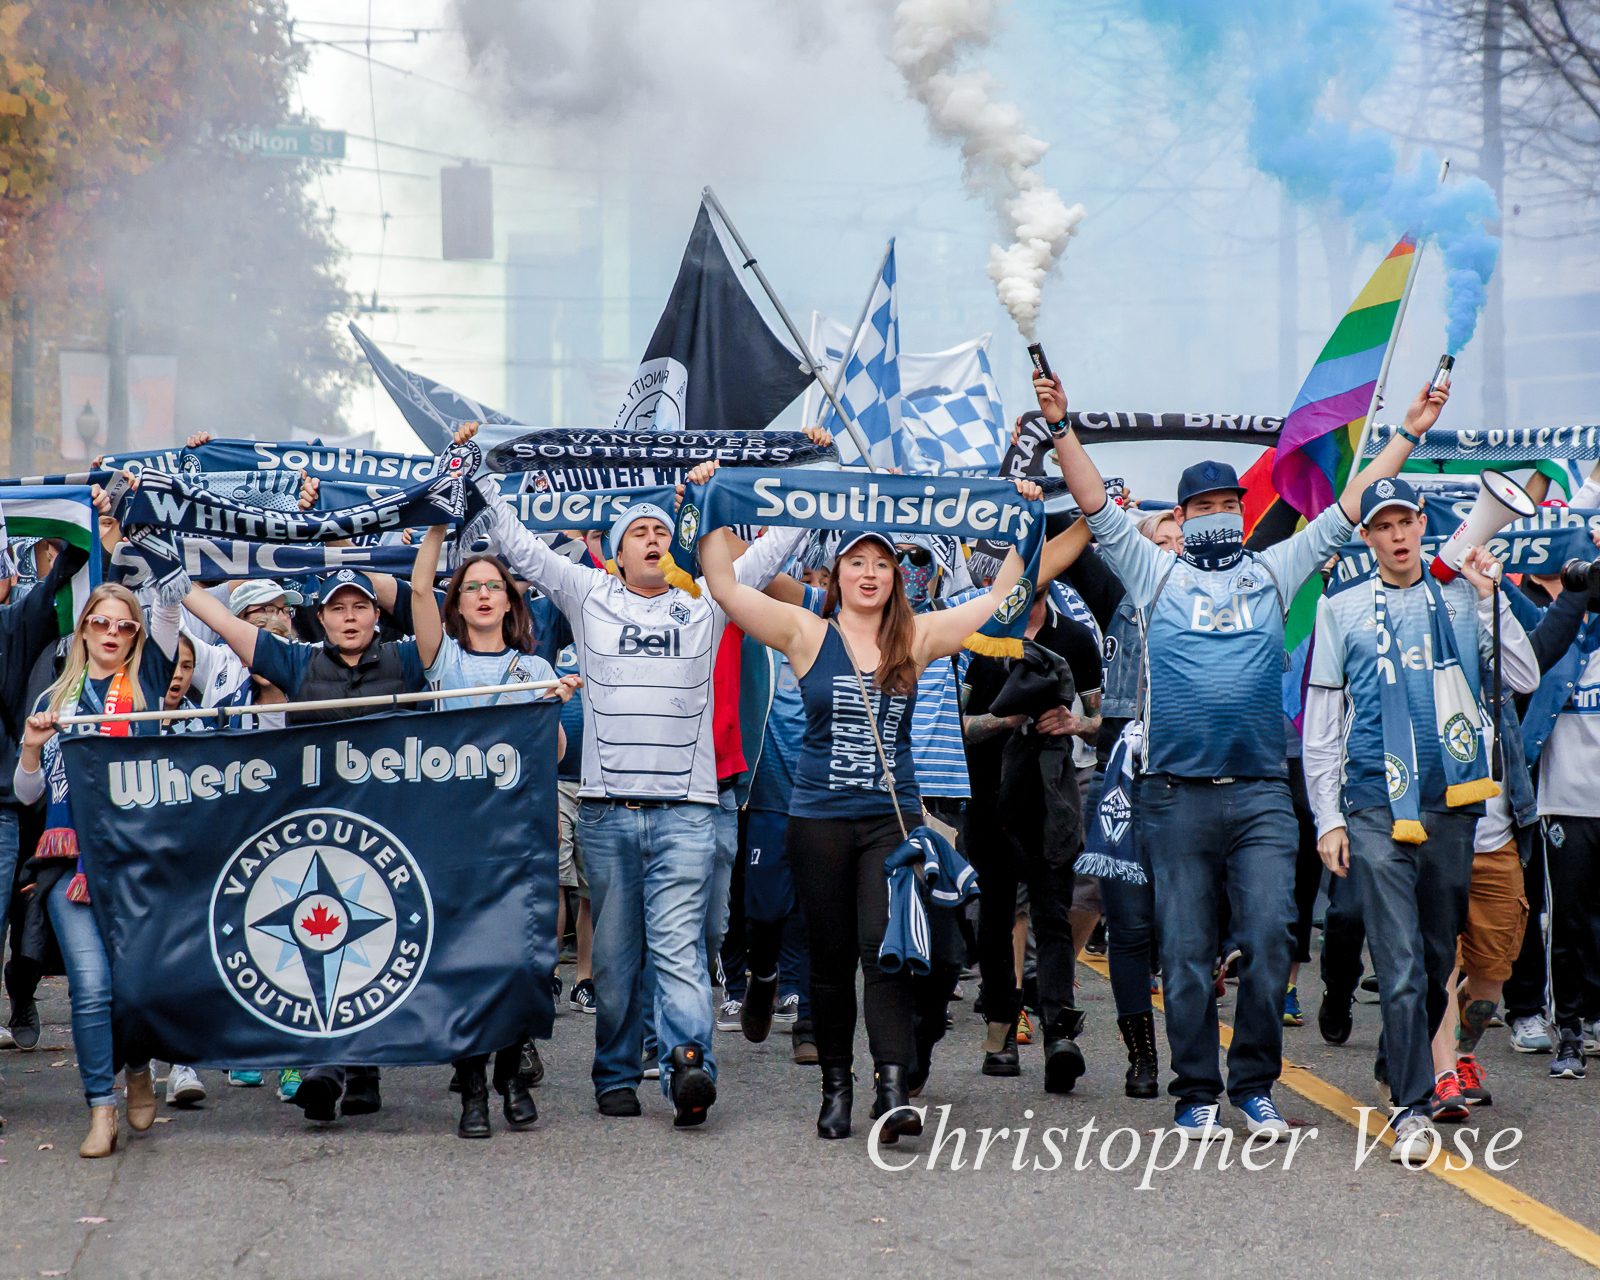 2017-10-29 March to the Match 2.jpg